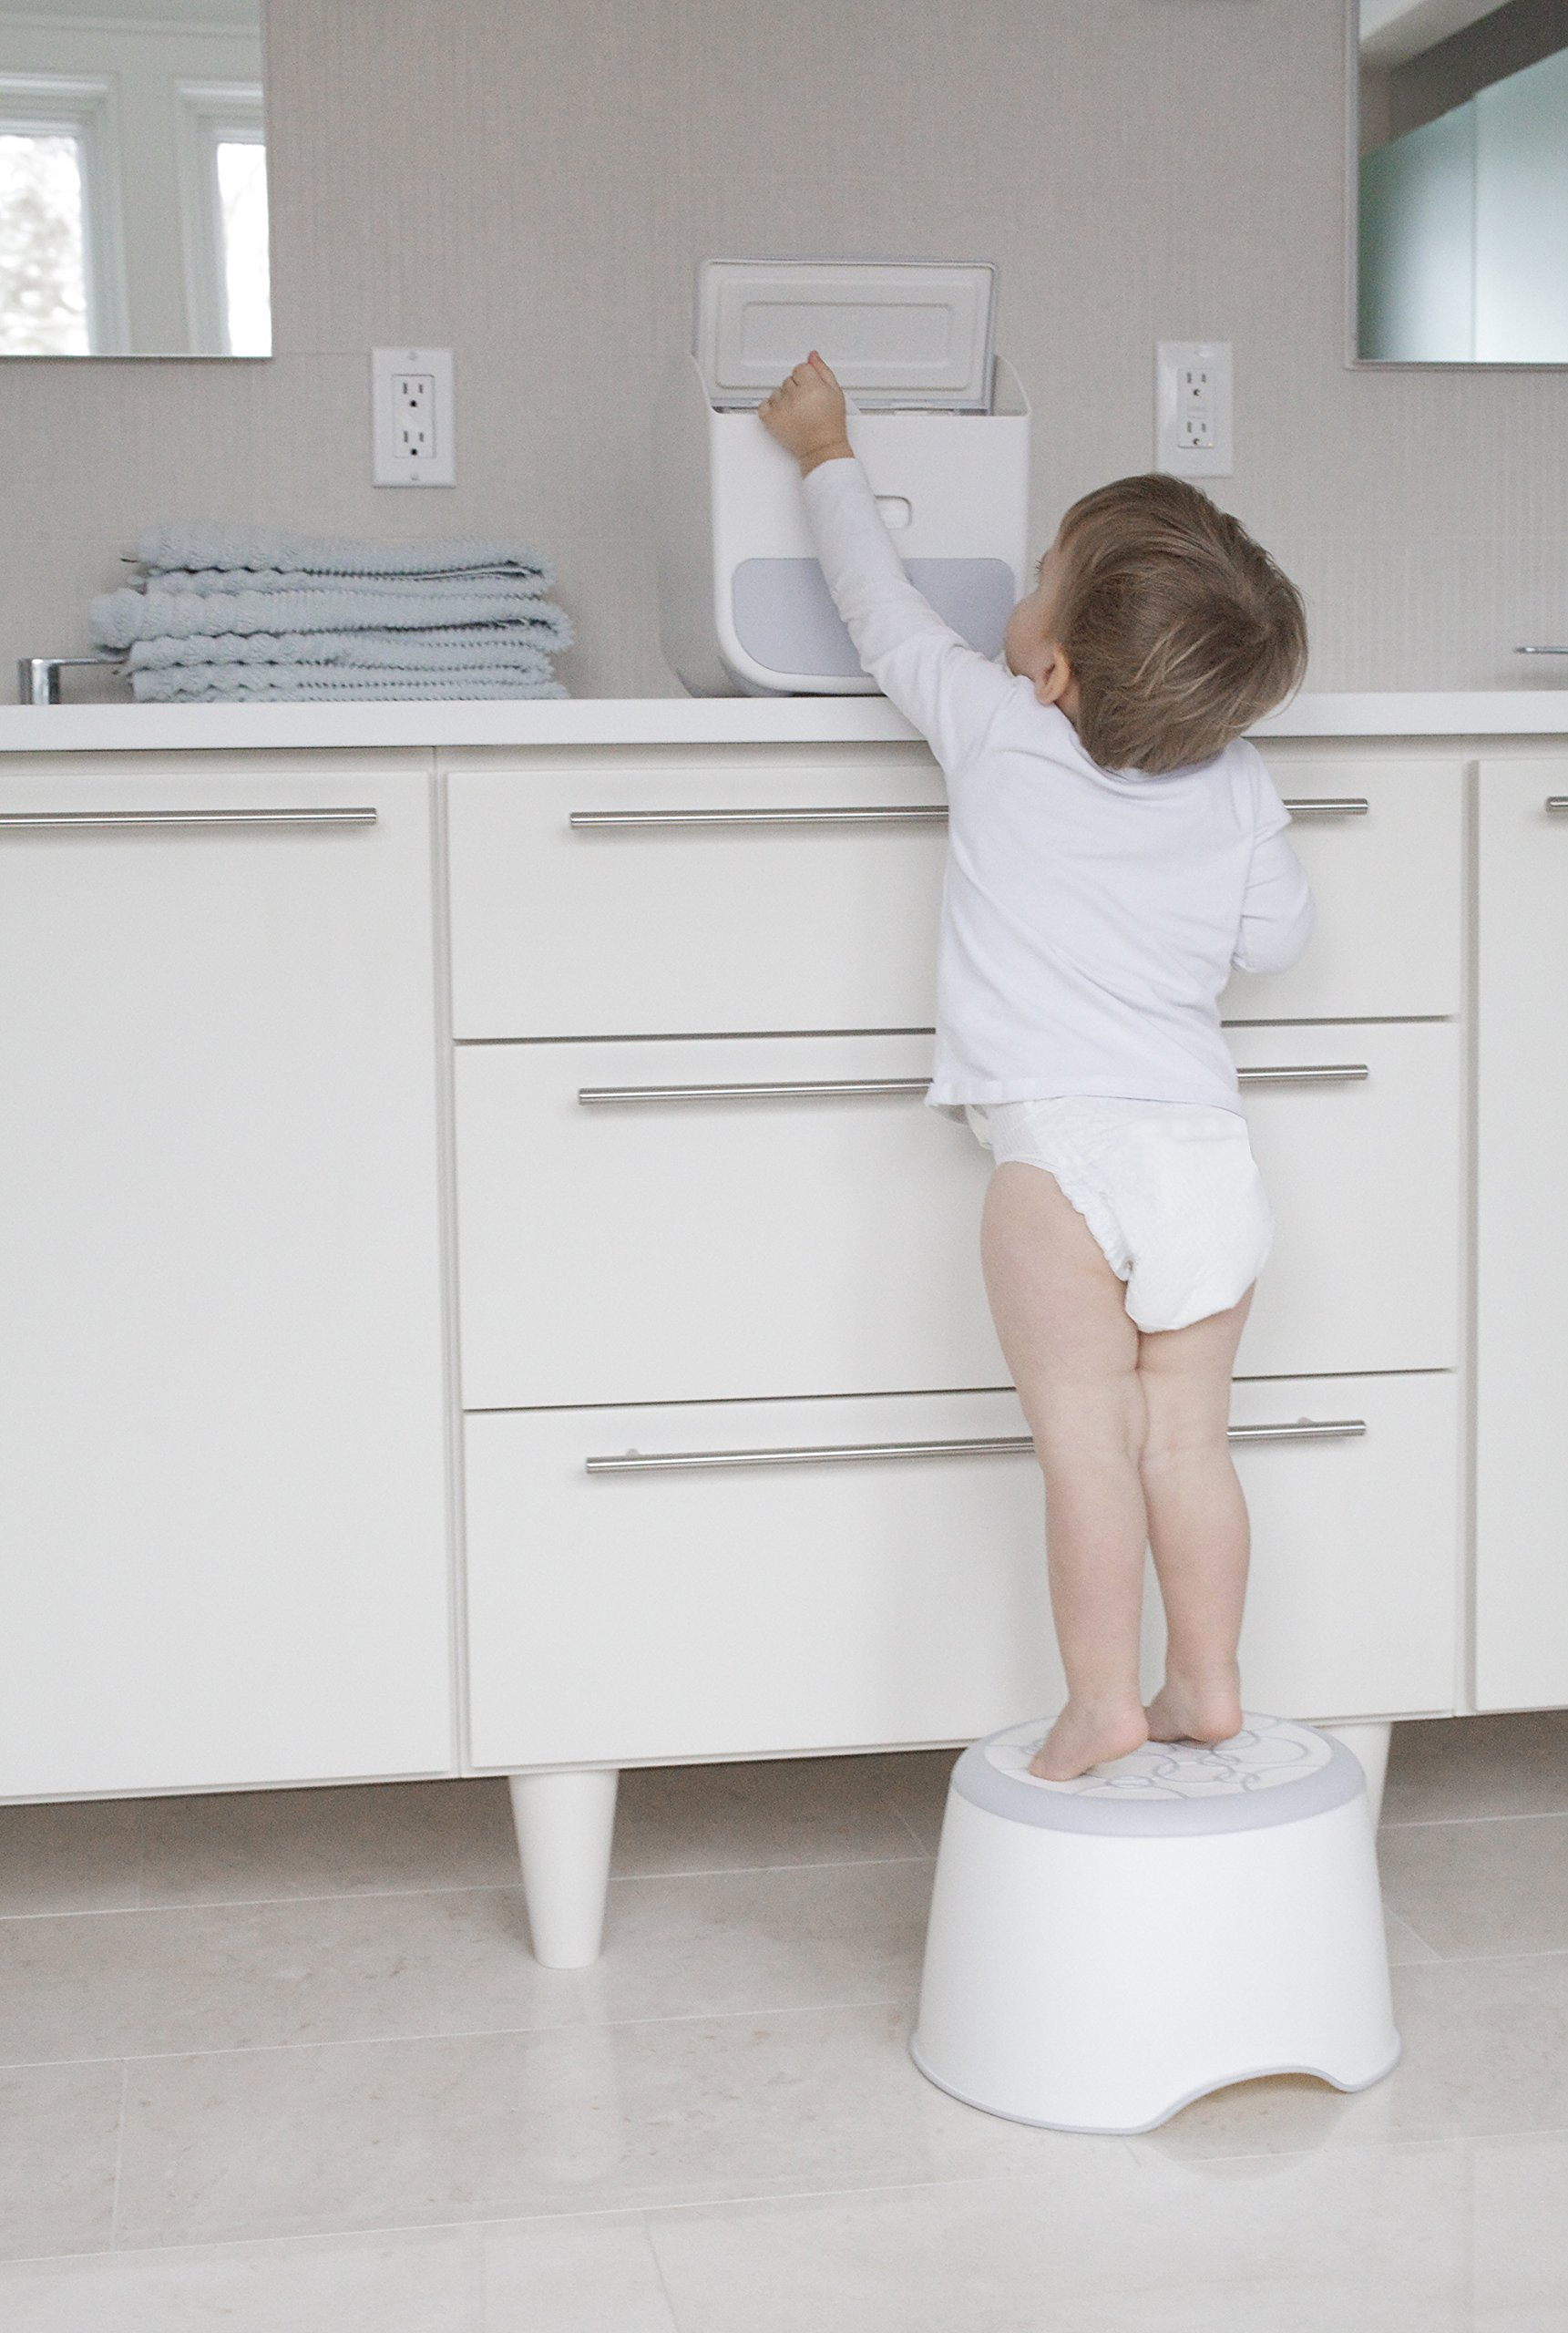 Ubbi Step Stool Safe, Stable and Sturdy for Toddlers, Non-Skid Rubber Surface and Contour, Easy to Clean and Modern Design, Navy by Ubbi